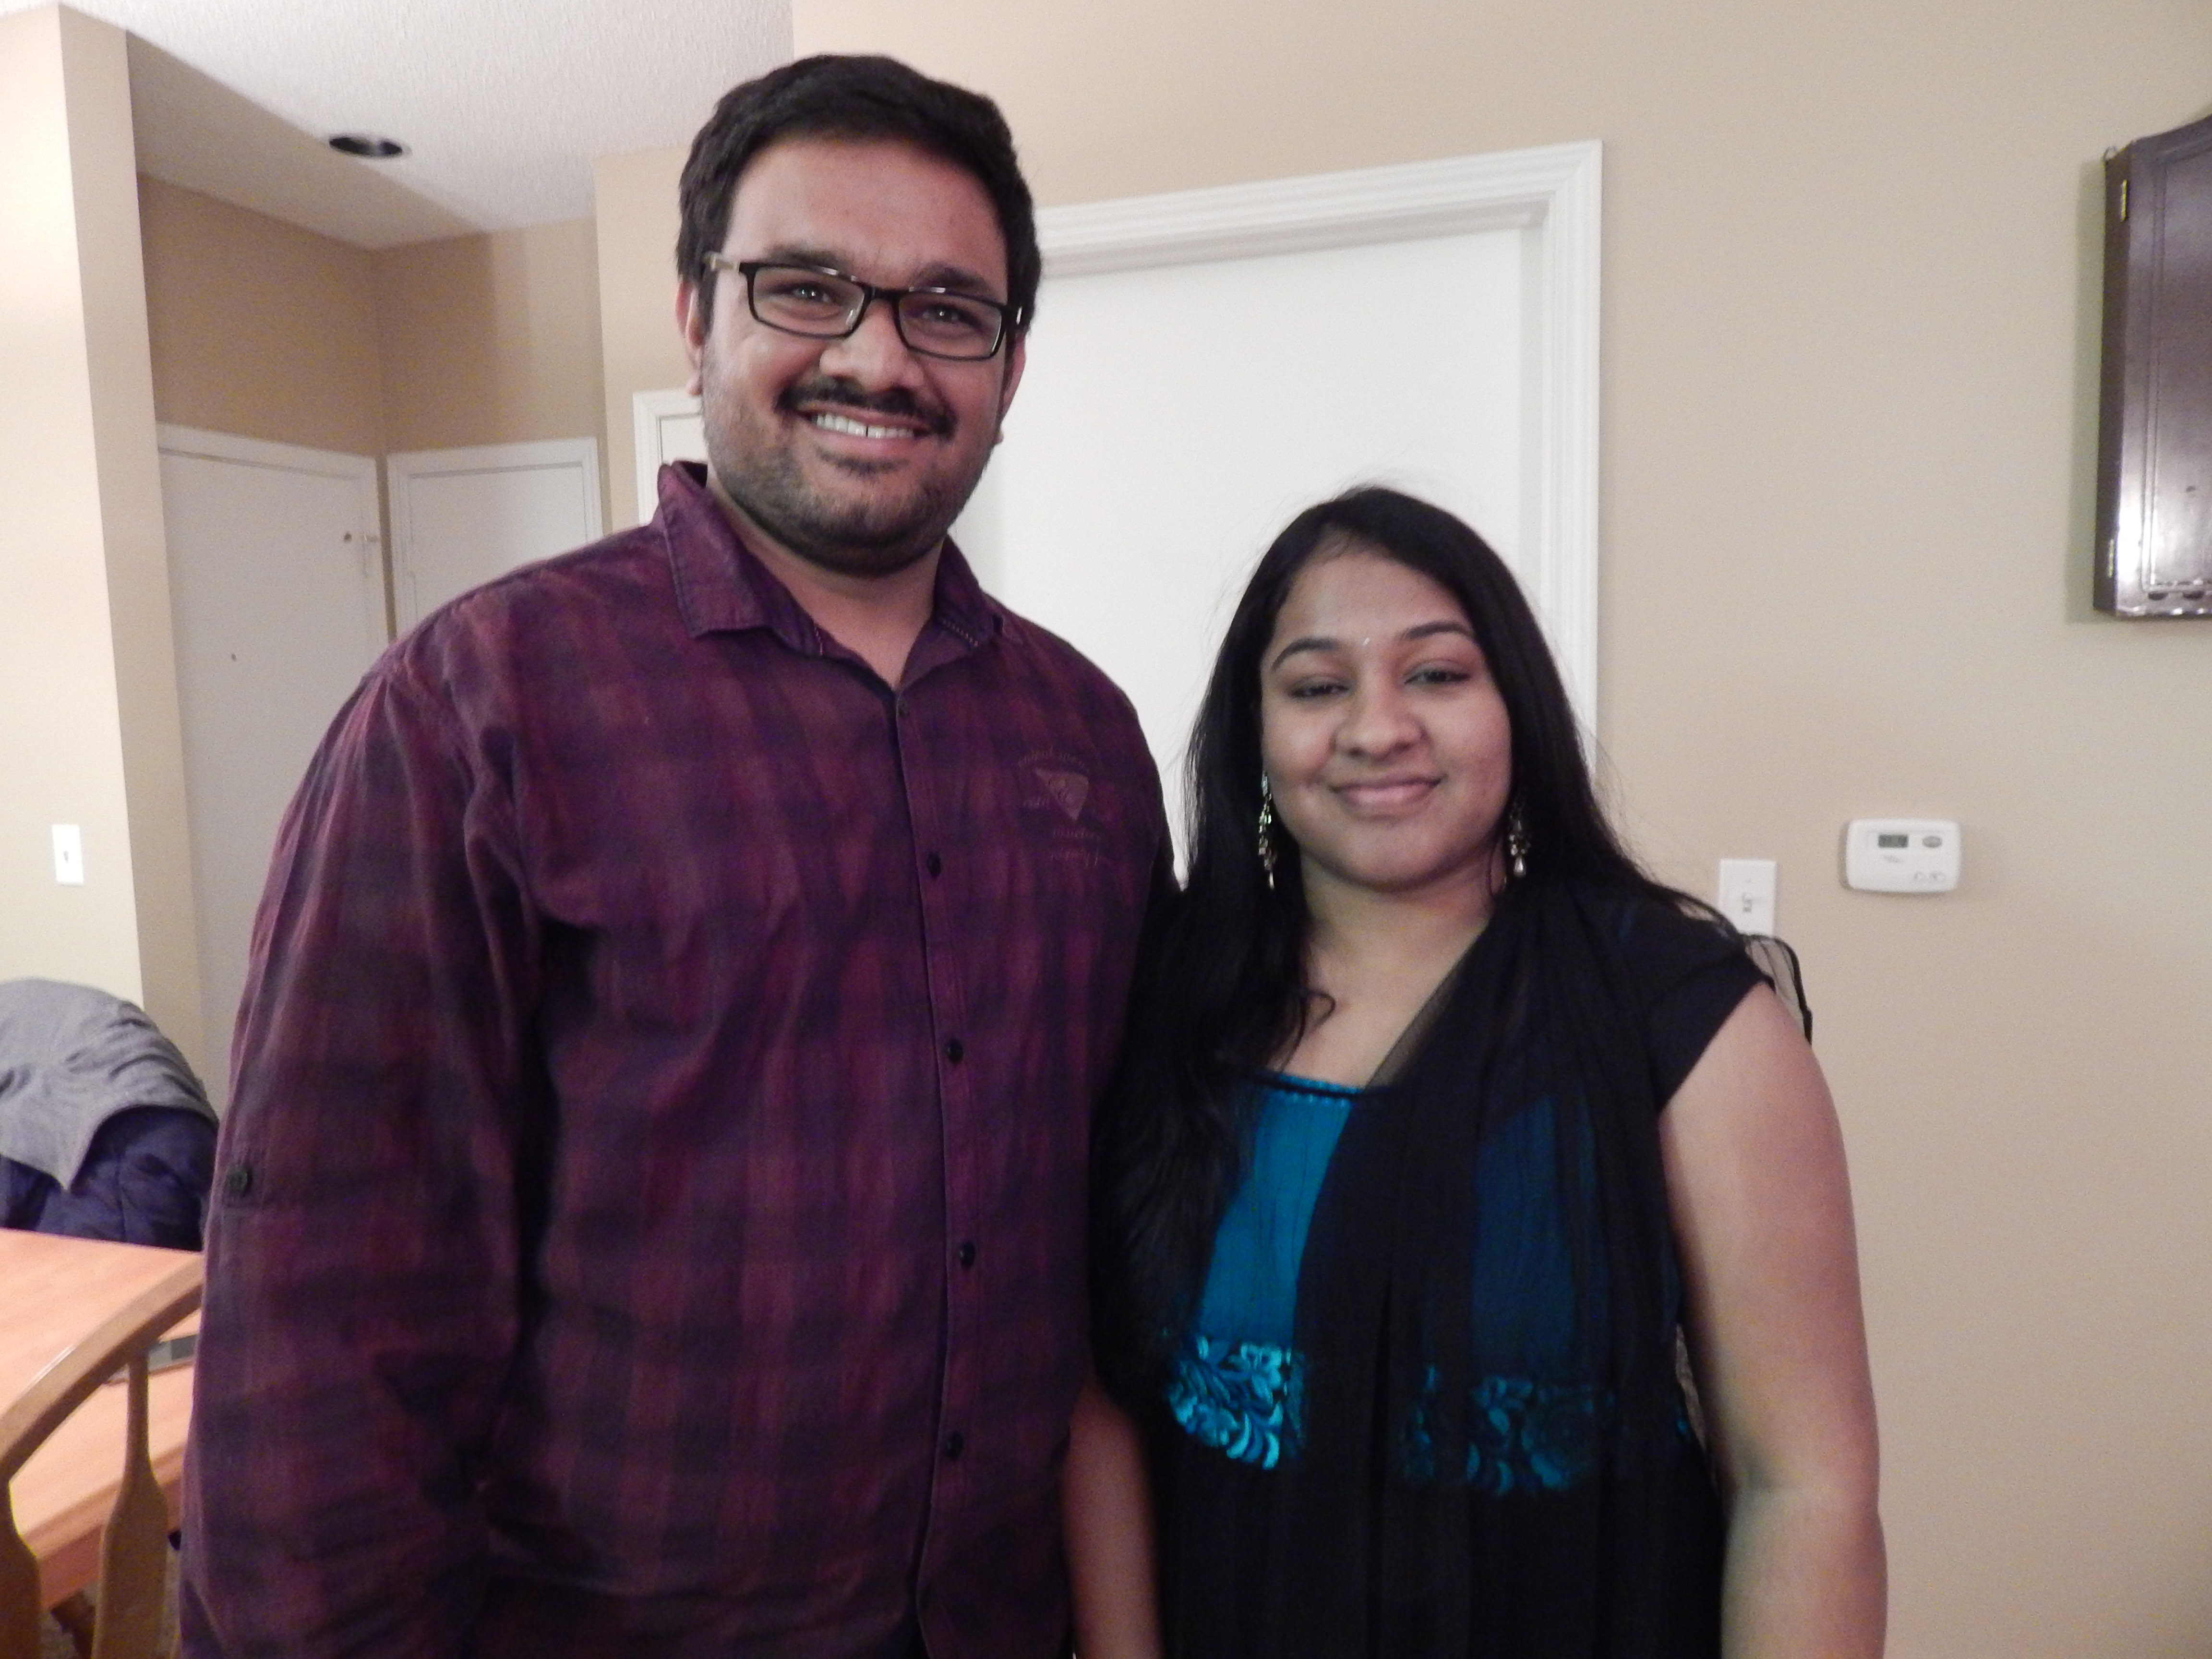 Abhi and his wife.